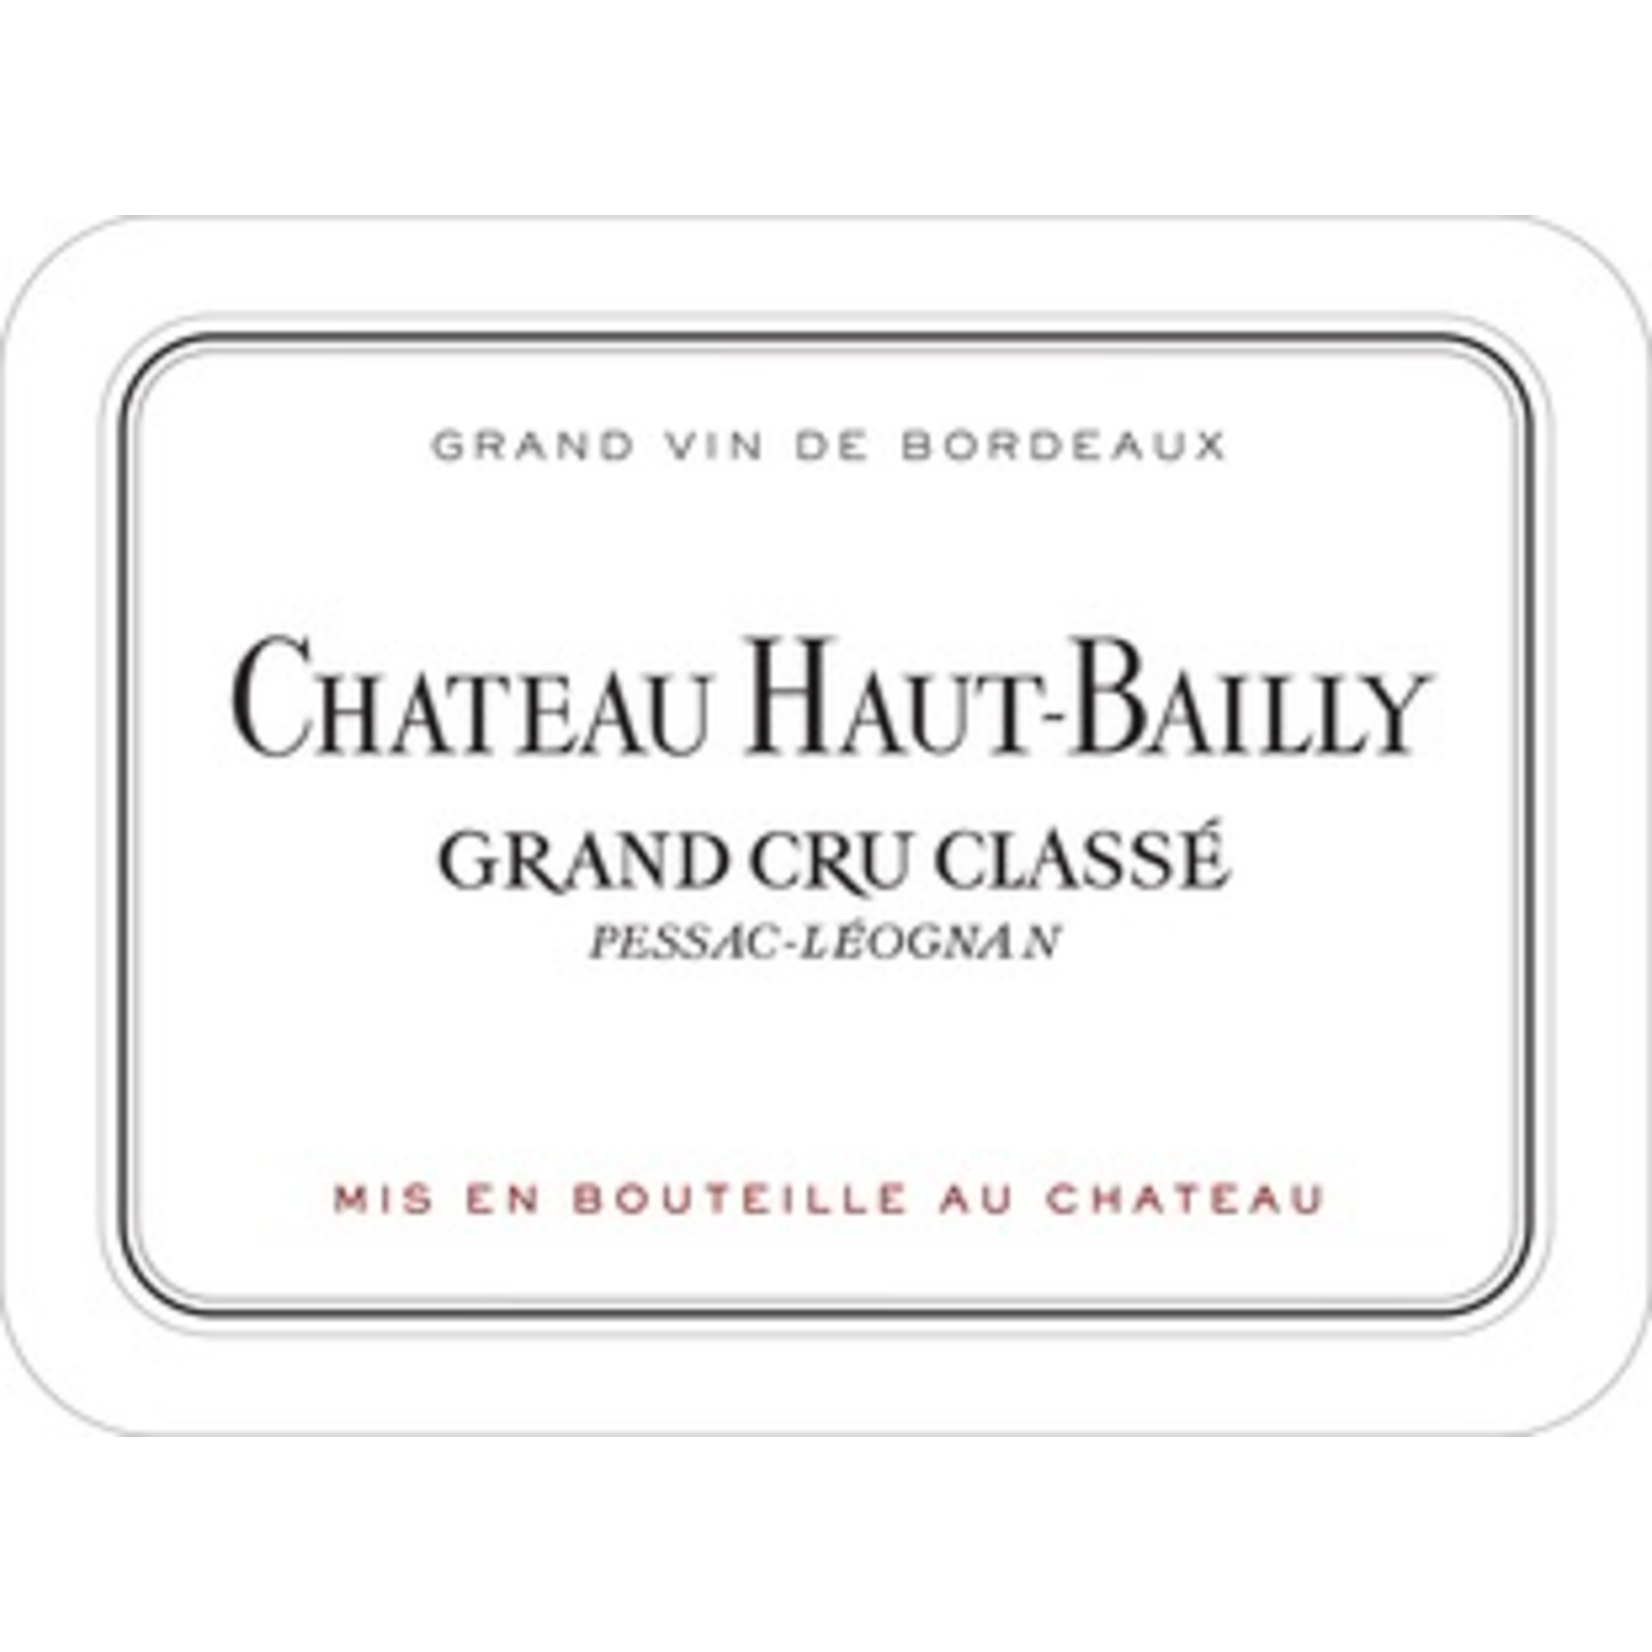 Ch Haut Bailly 2018